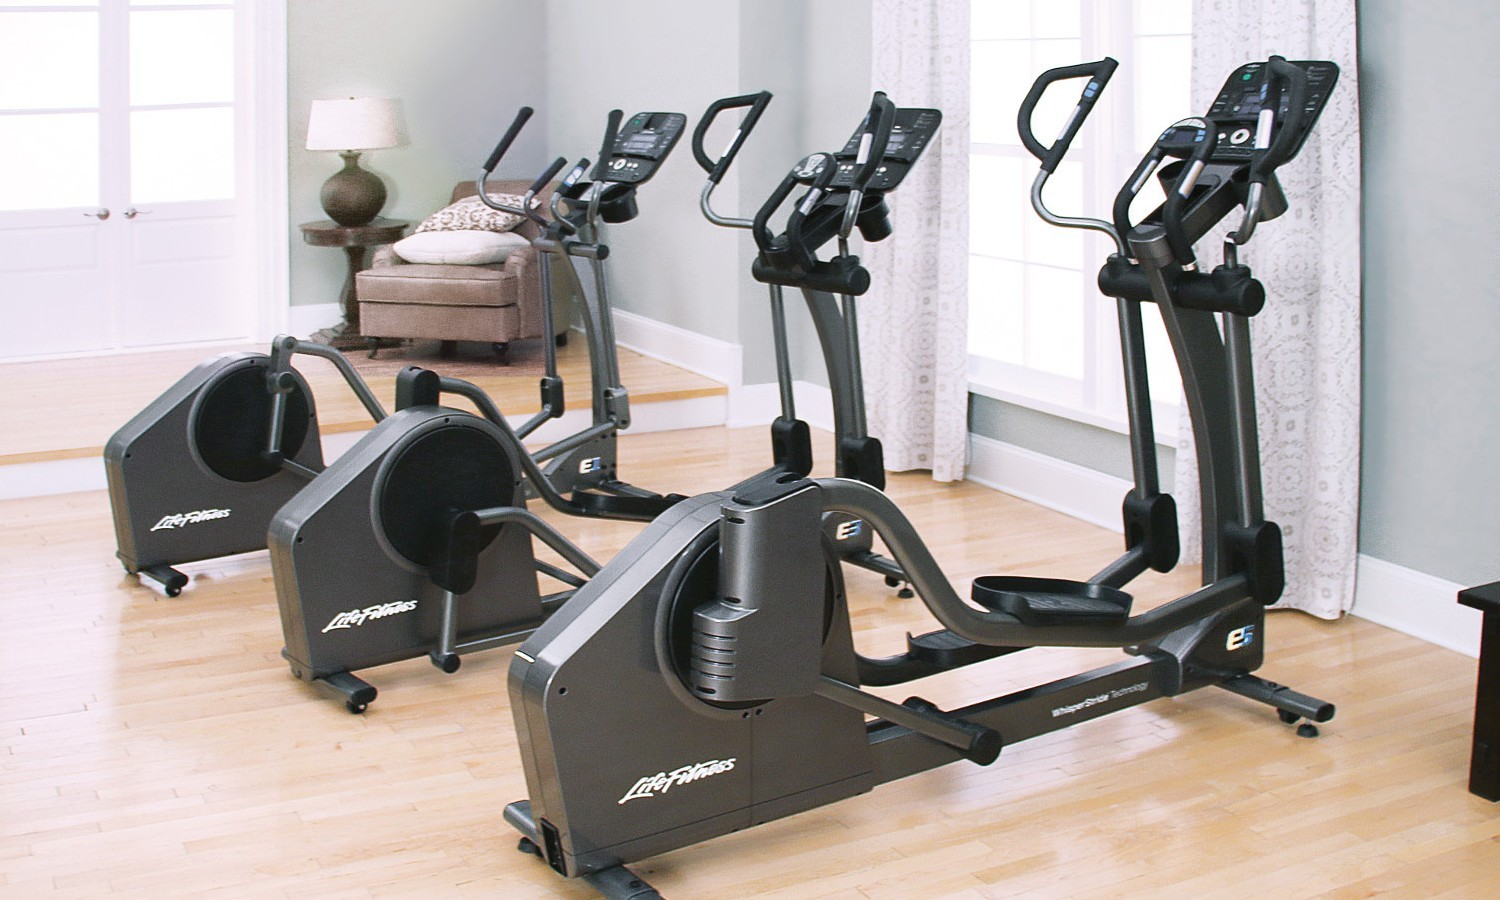 All New E-Series Ellipticals From Life Fitness